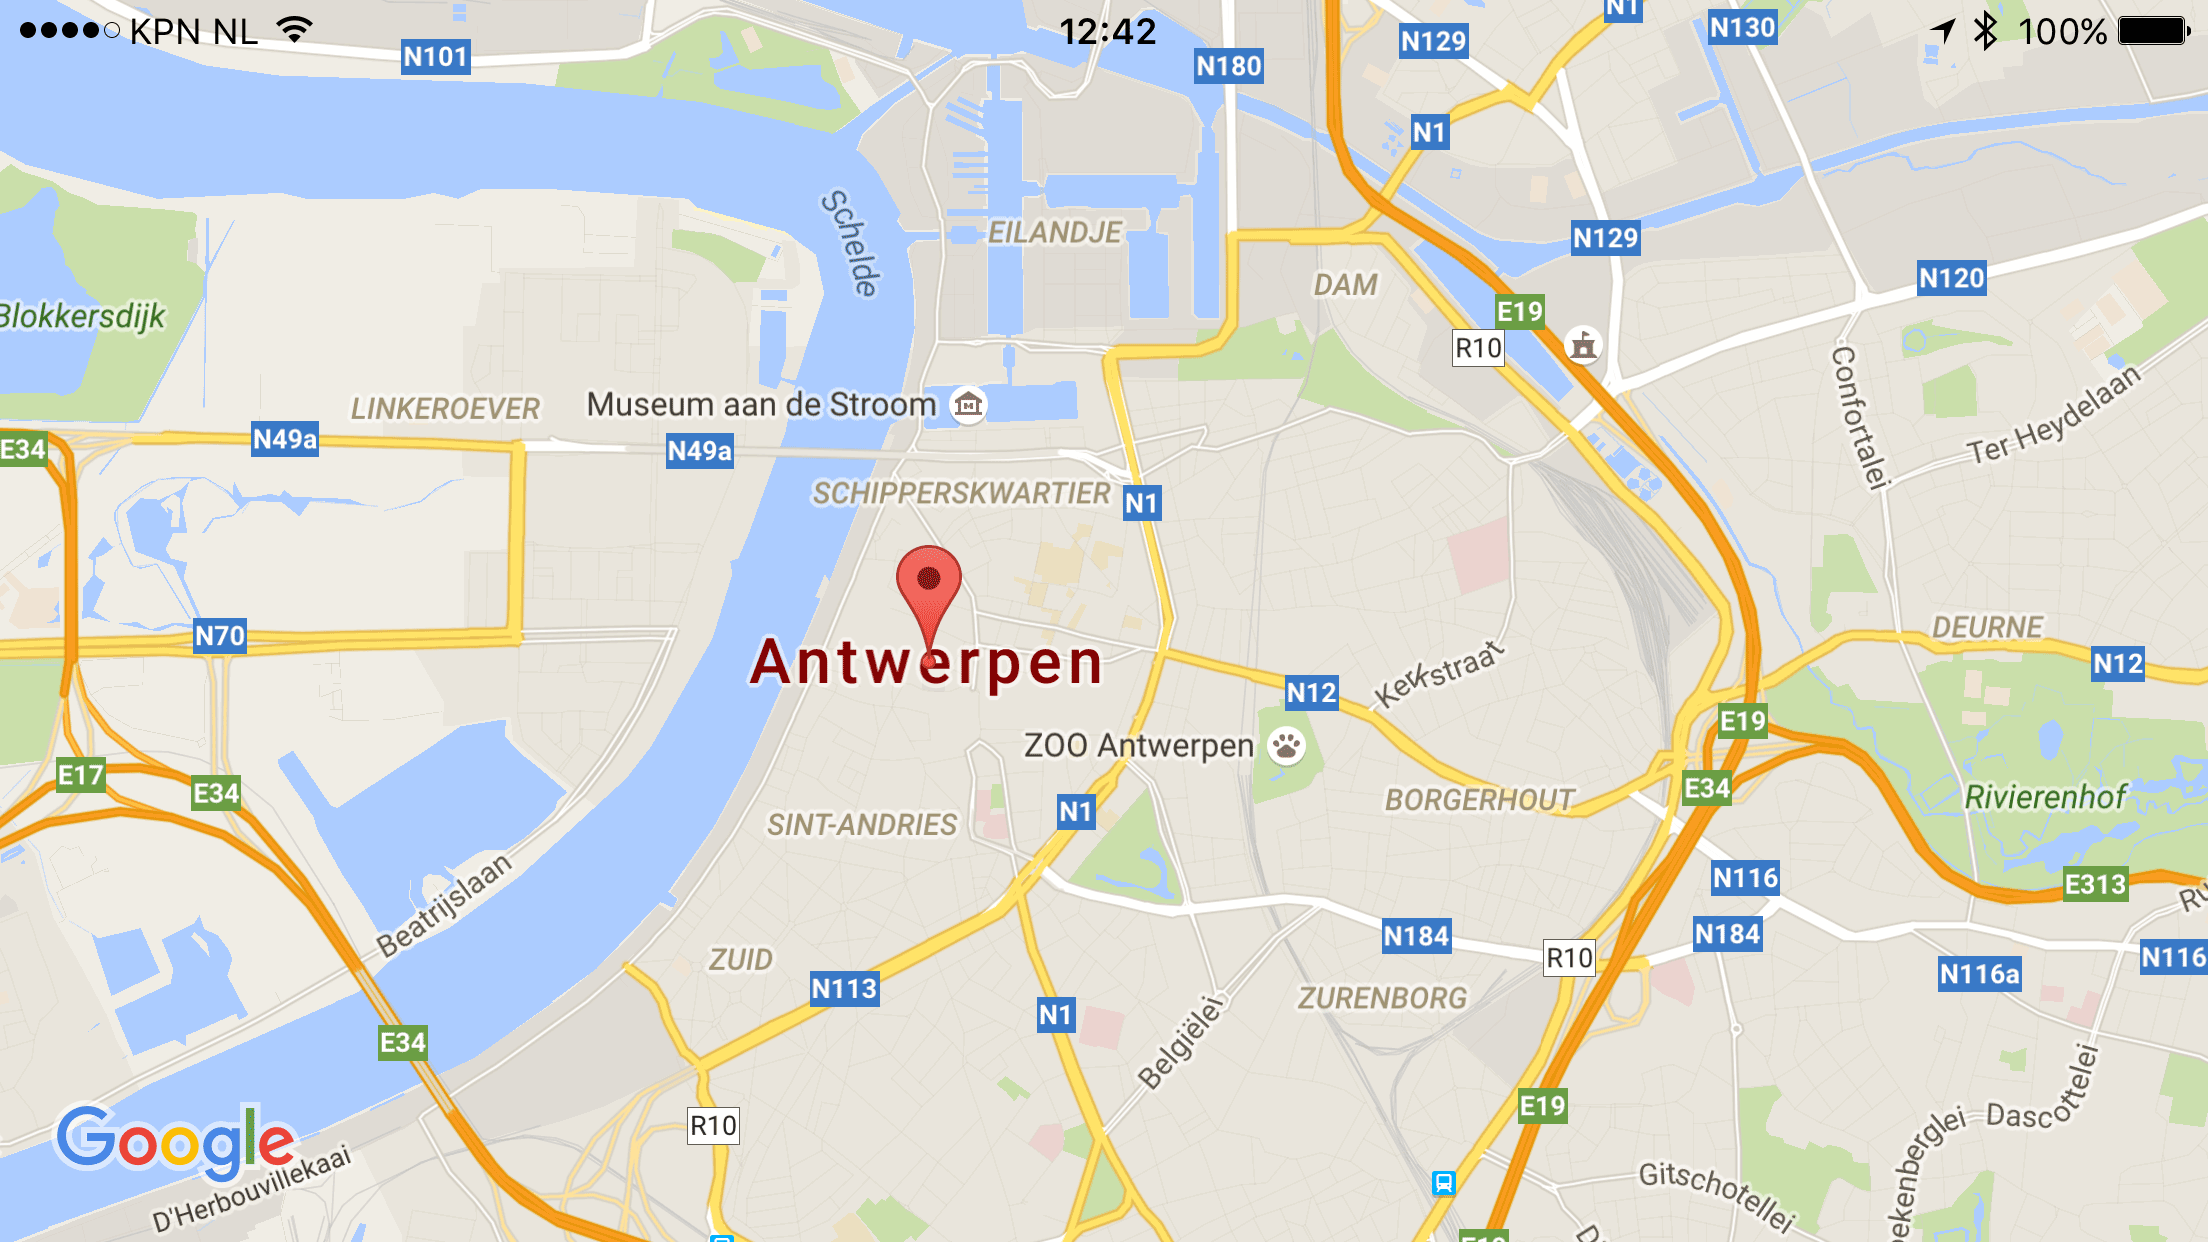 google maps en apple kaarten vergeleken welke is de beste